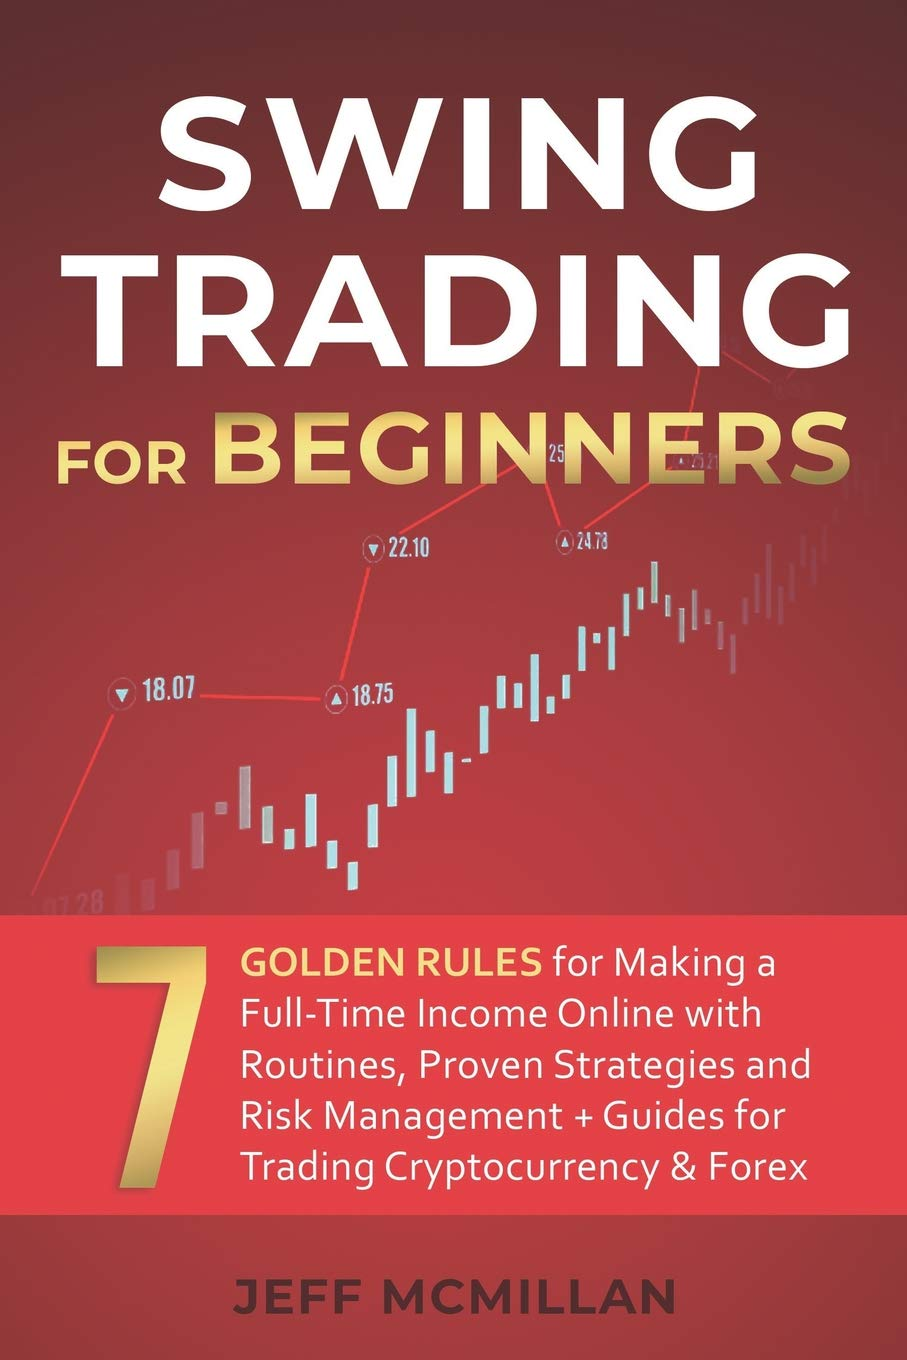 how to day trading or swing trading cryptocurrency